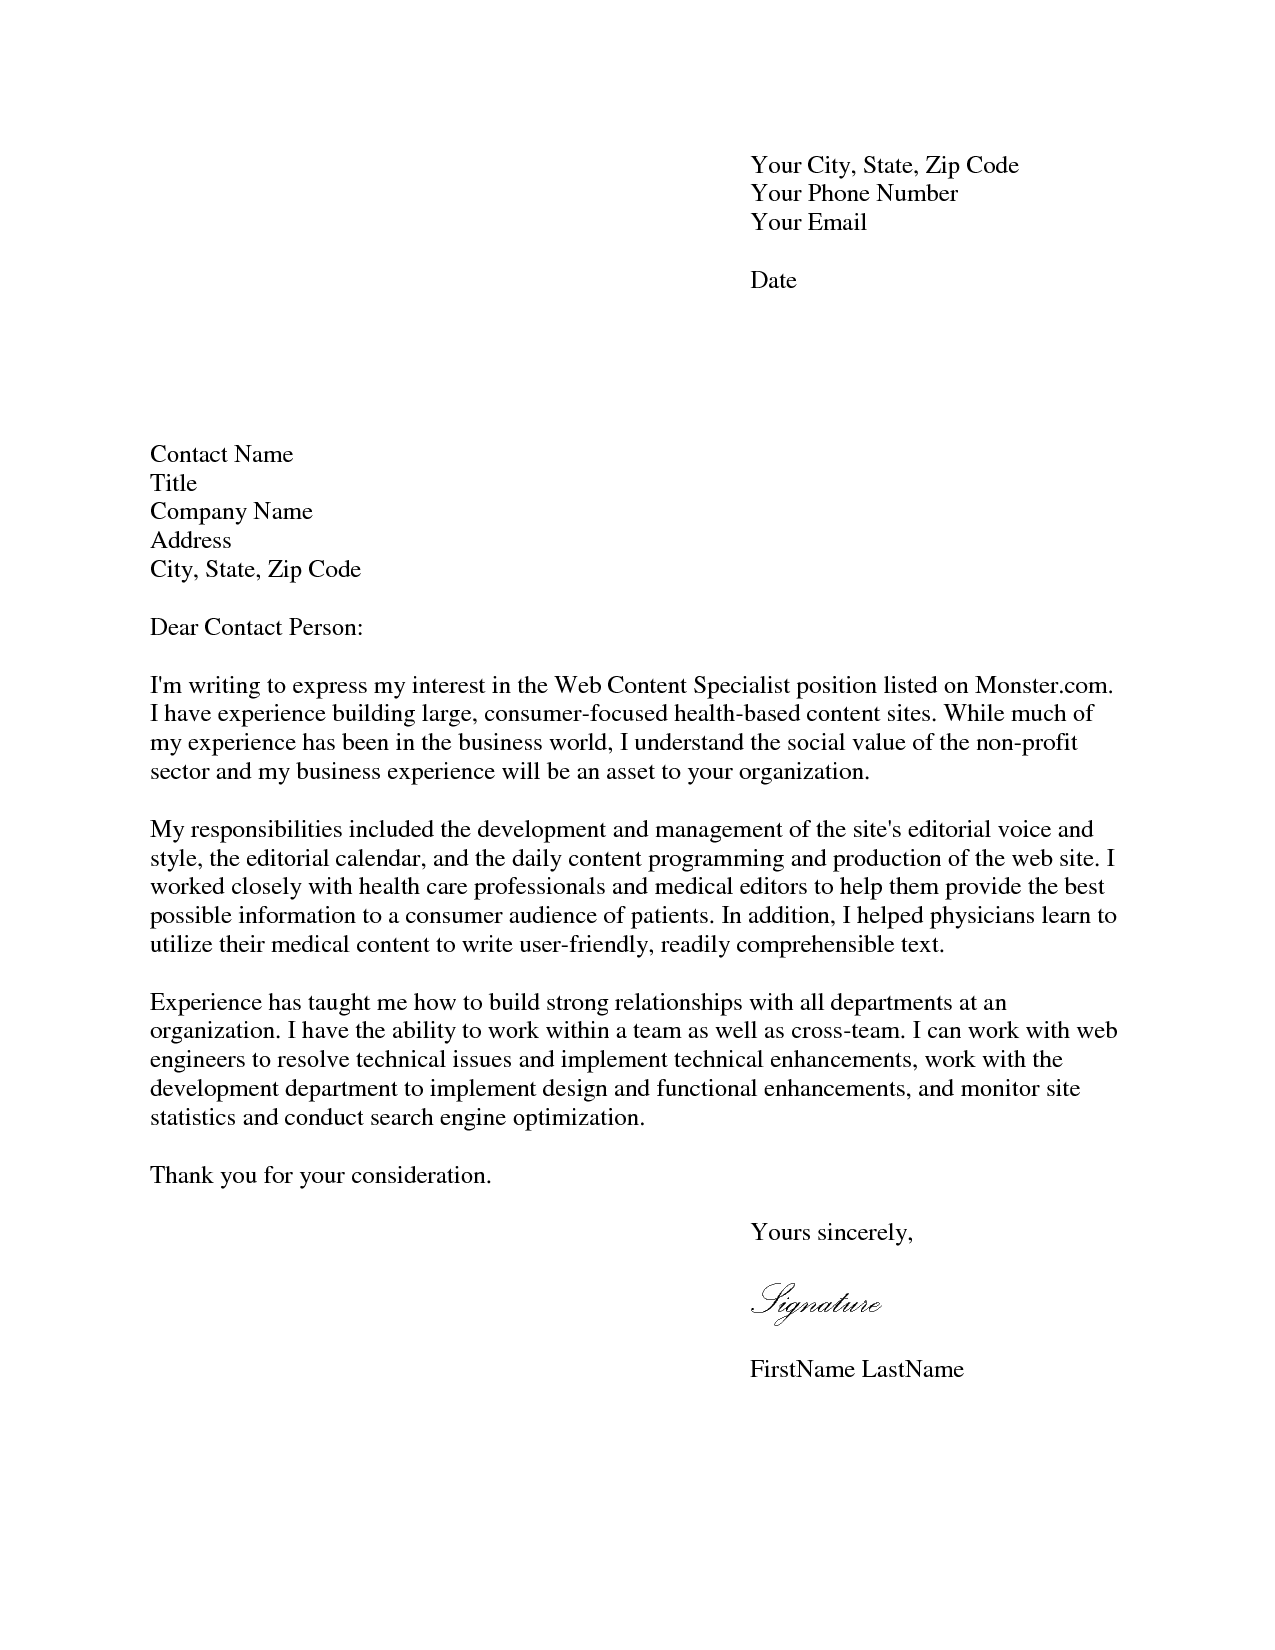 layout of cover letter for job application - cover letter job application job application cover